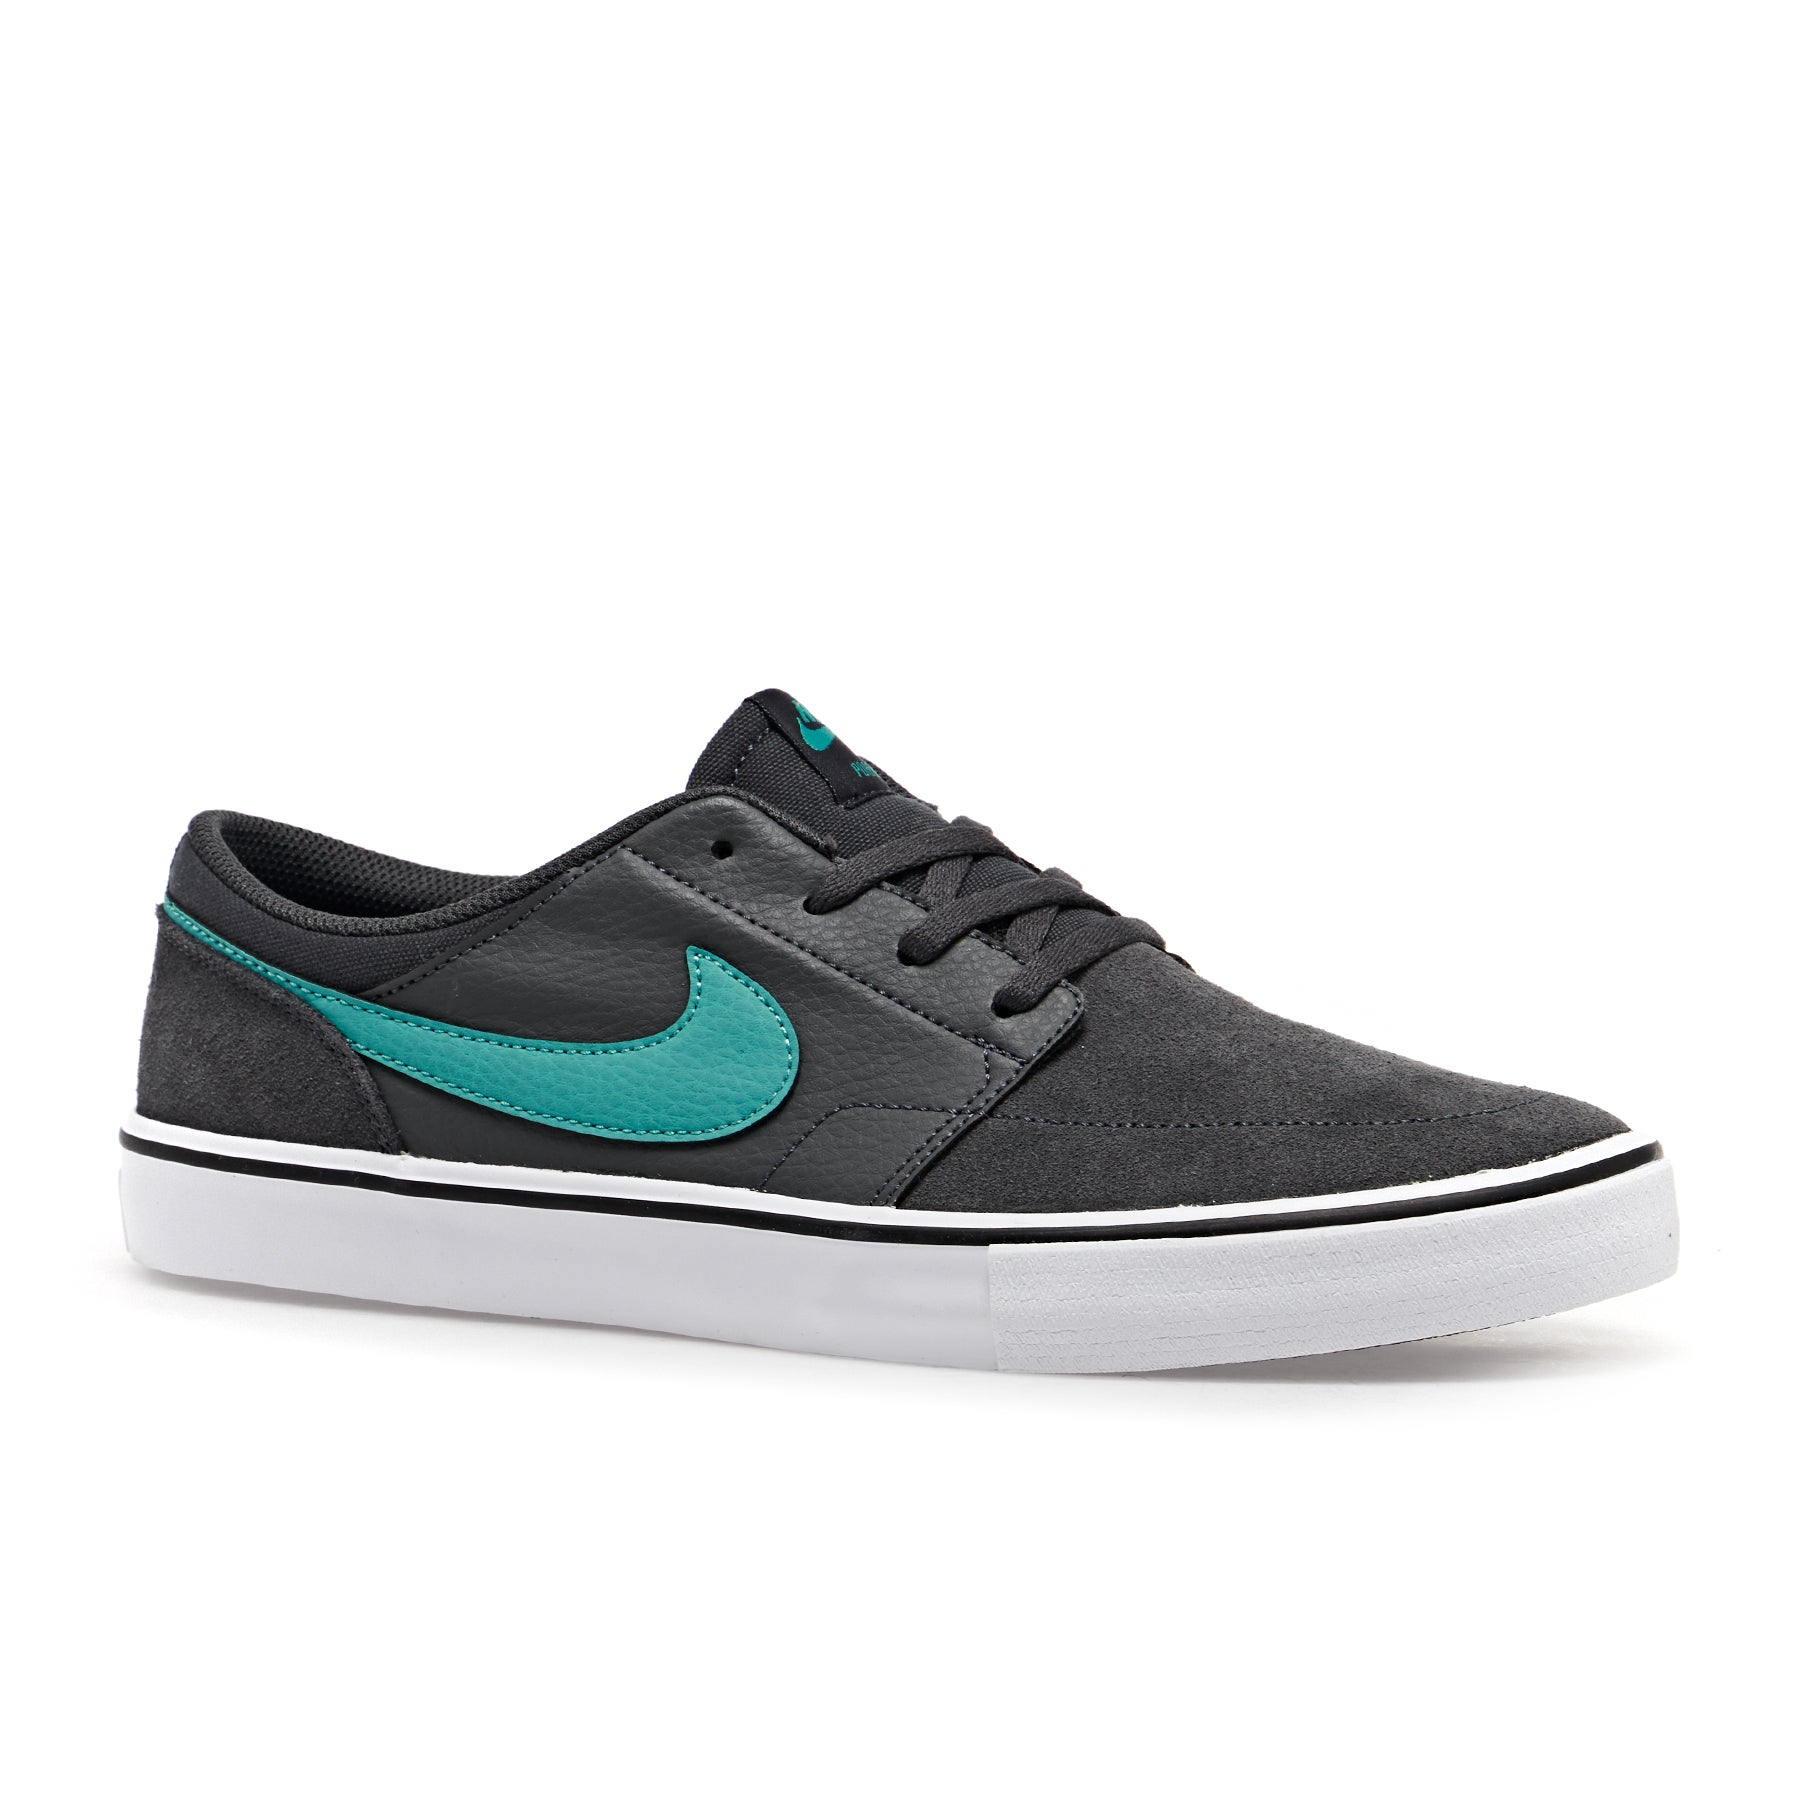 Chaussures Nike SB Portmore ll Solarsoft - Anthracite Cabana White